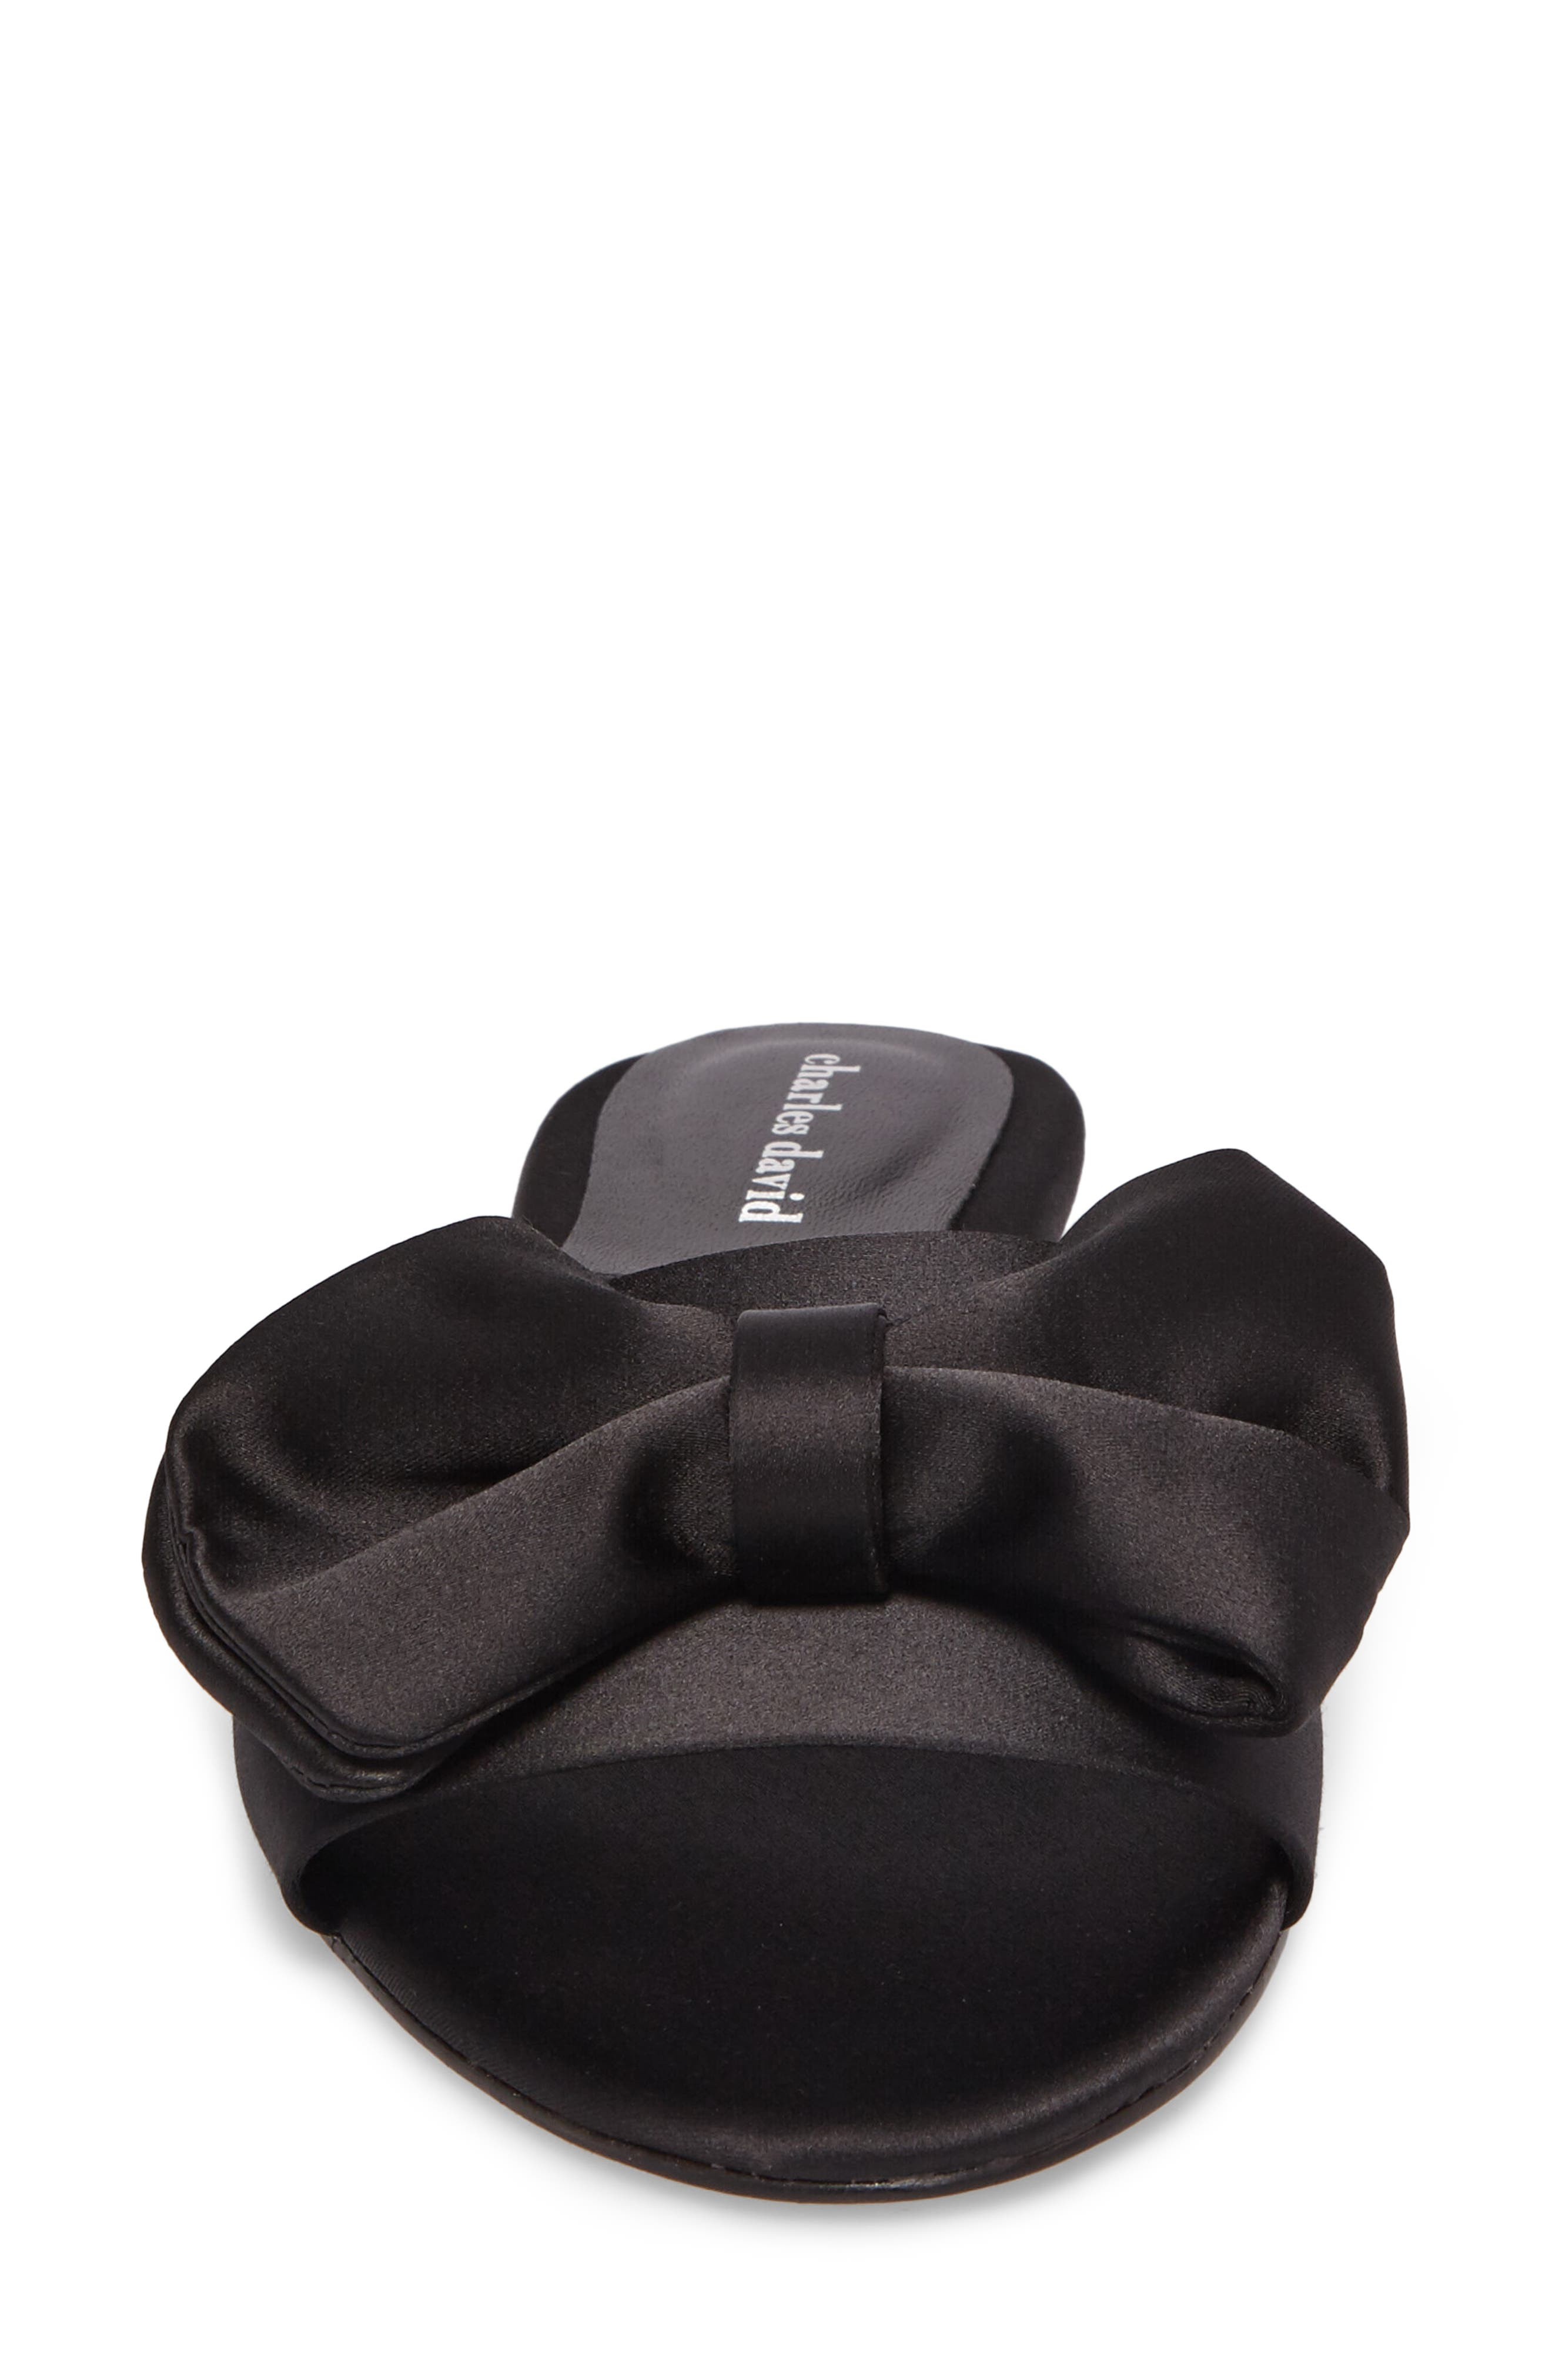 Bow Slide Sandal,                             Alternate thumbnail 4, color,                             002